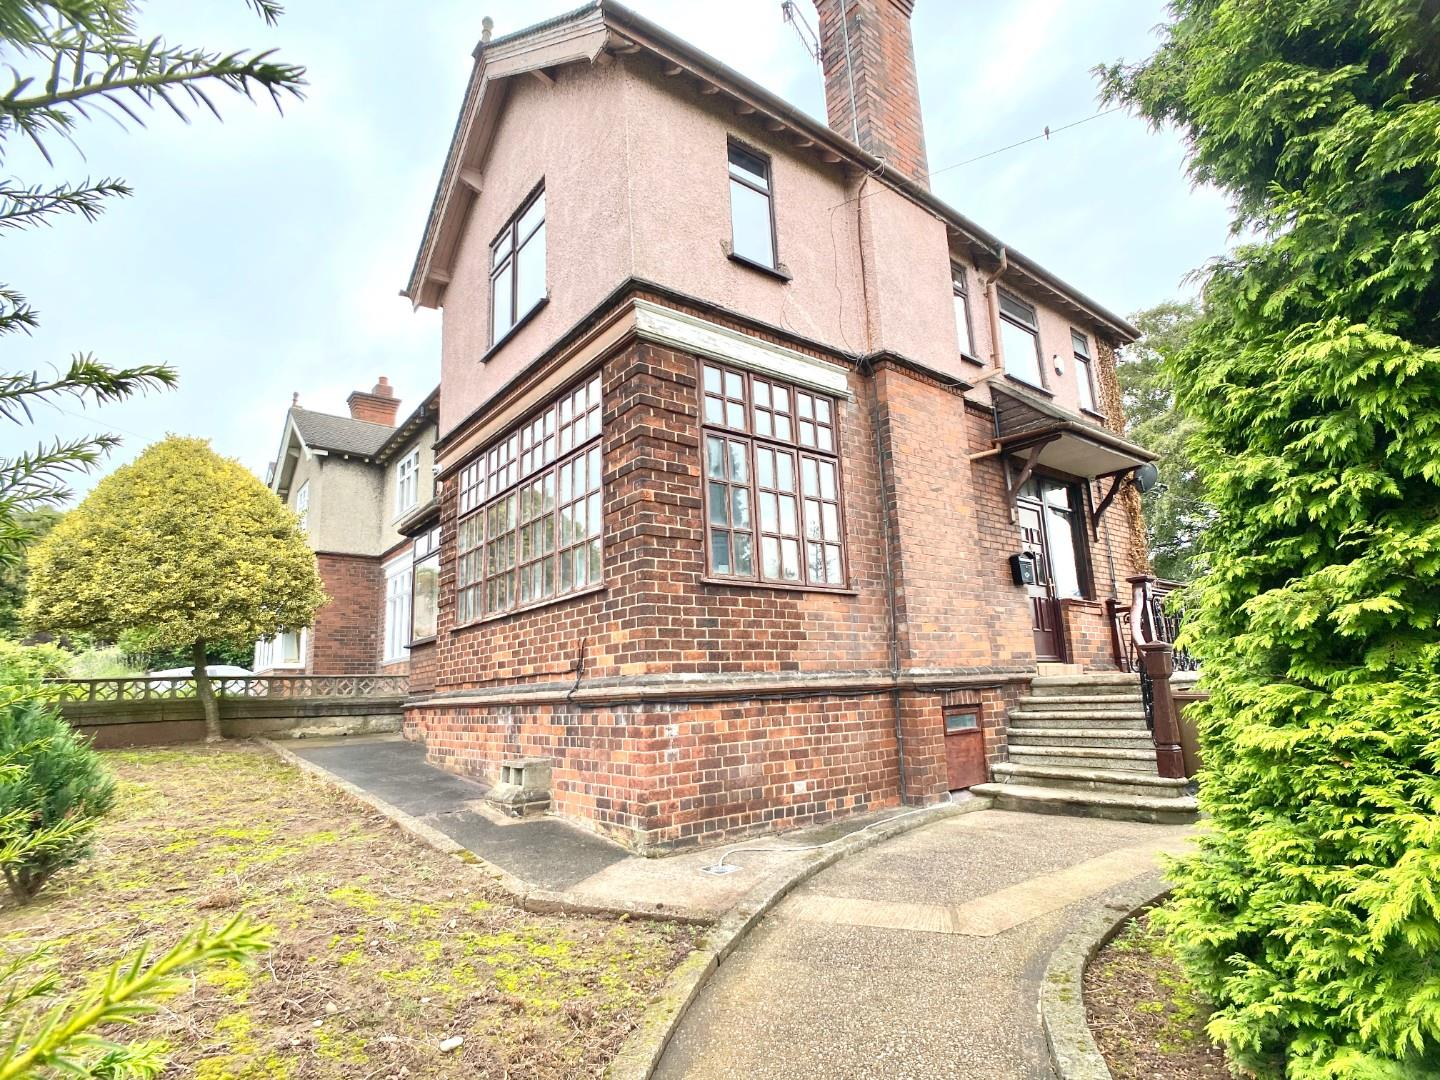 4 bed semi-detached house for sale in Trent Valley Road, Staffordshire - Property Image 1